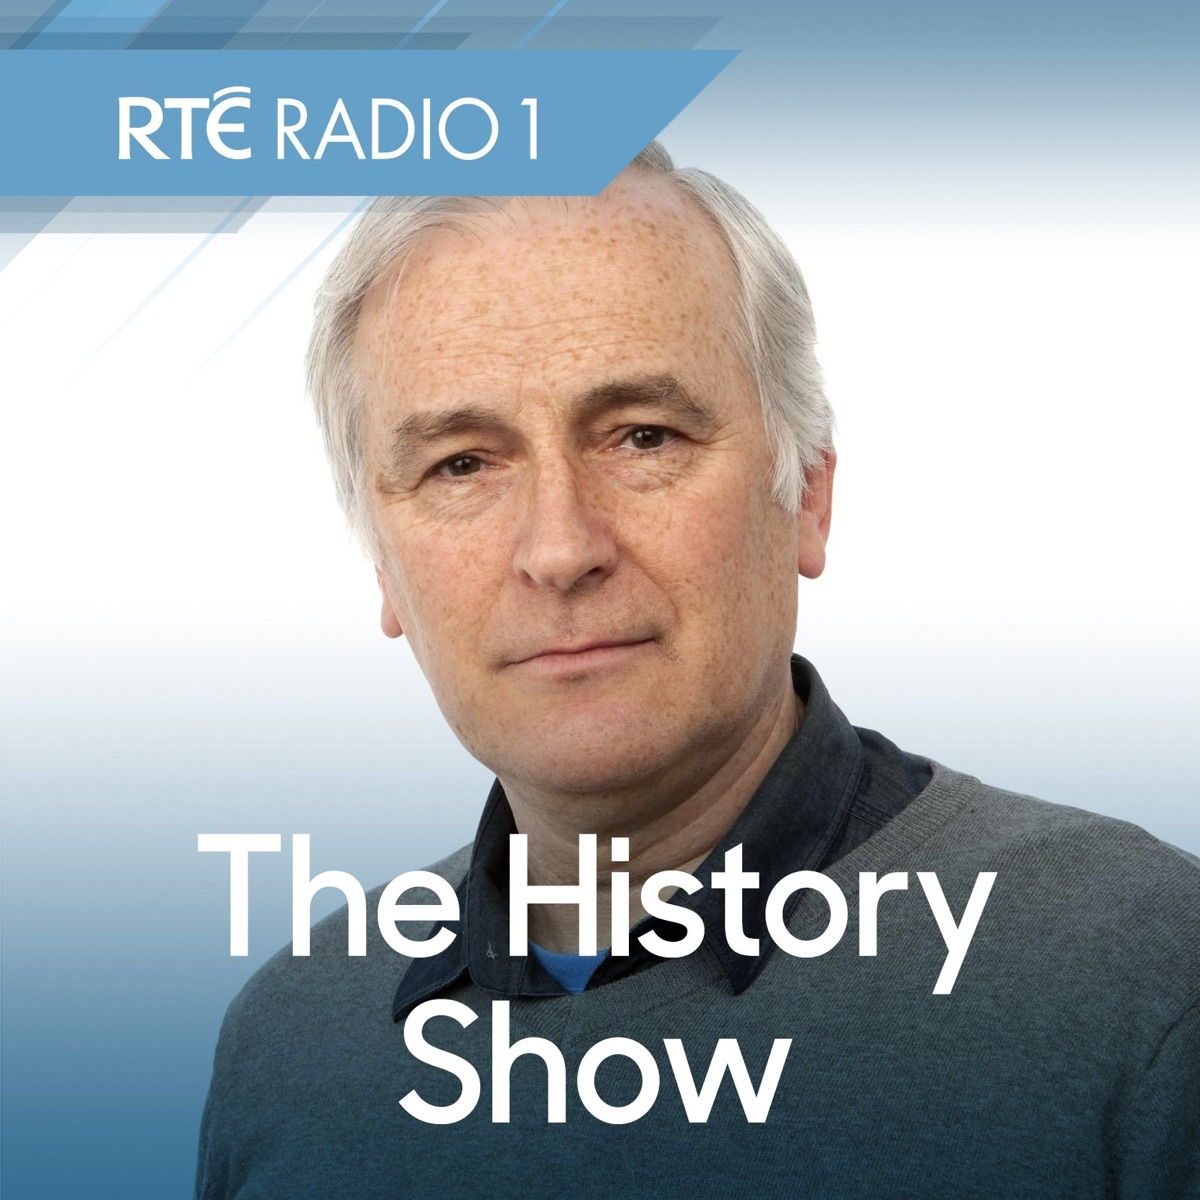 The History Show